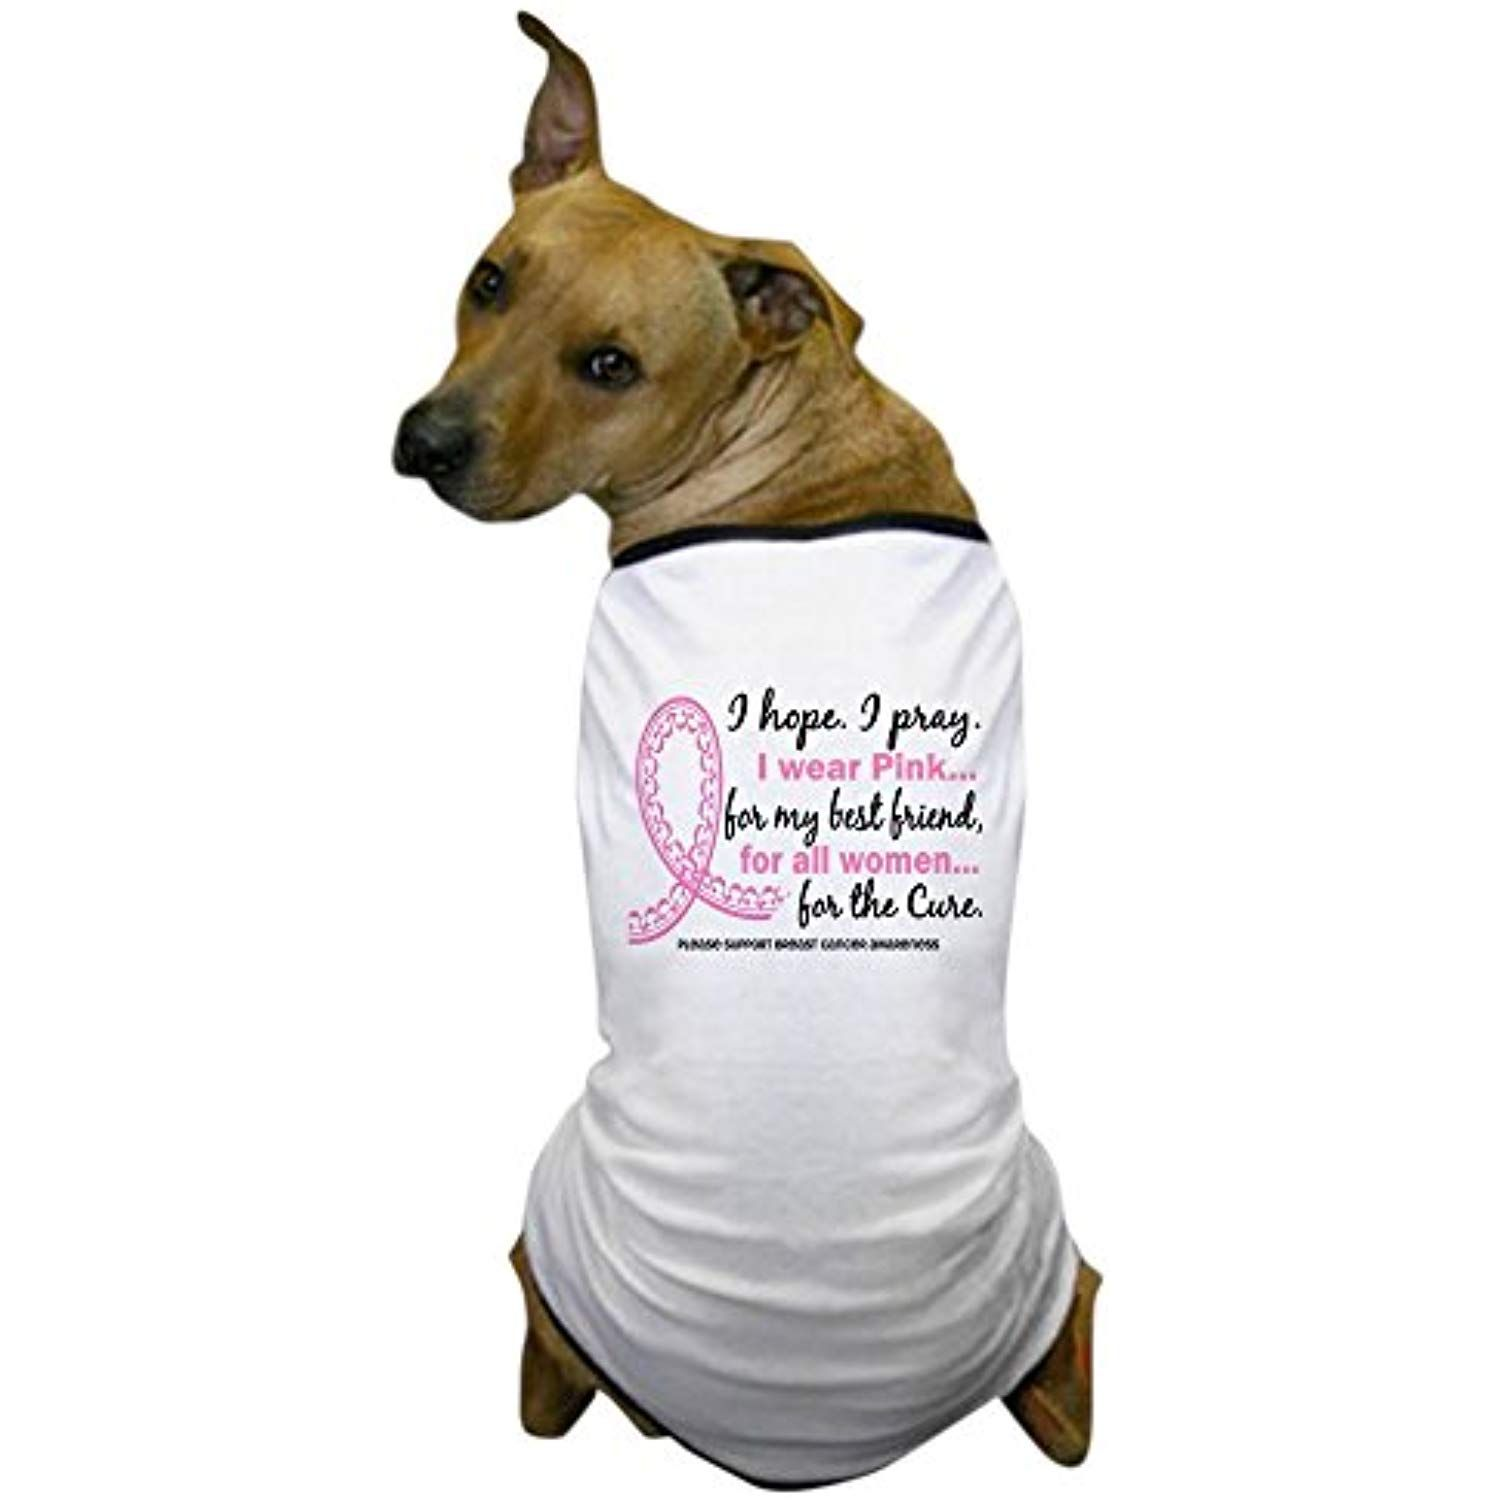 da32f0ec36 CafePress - Hope Pray Wear Pink Breast Cancer Dog T-Shirt - Dog T-Shirt,  Pet Clothing, Funny Dog Costume >>> Read more at the image link.